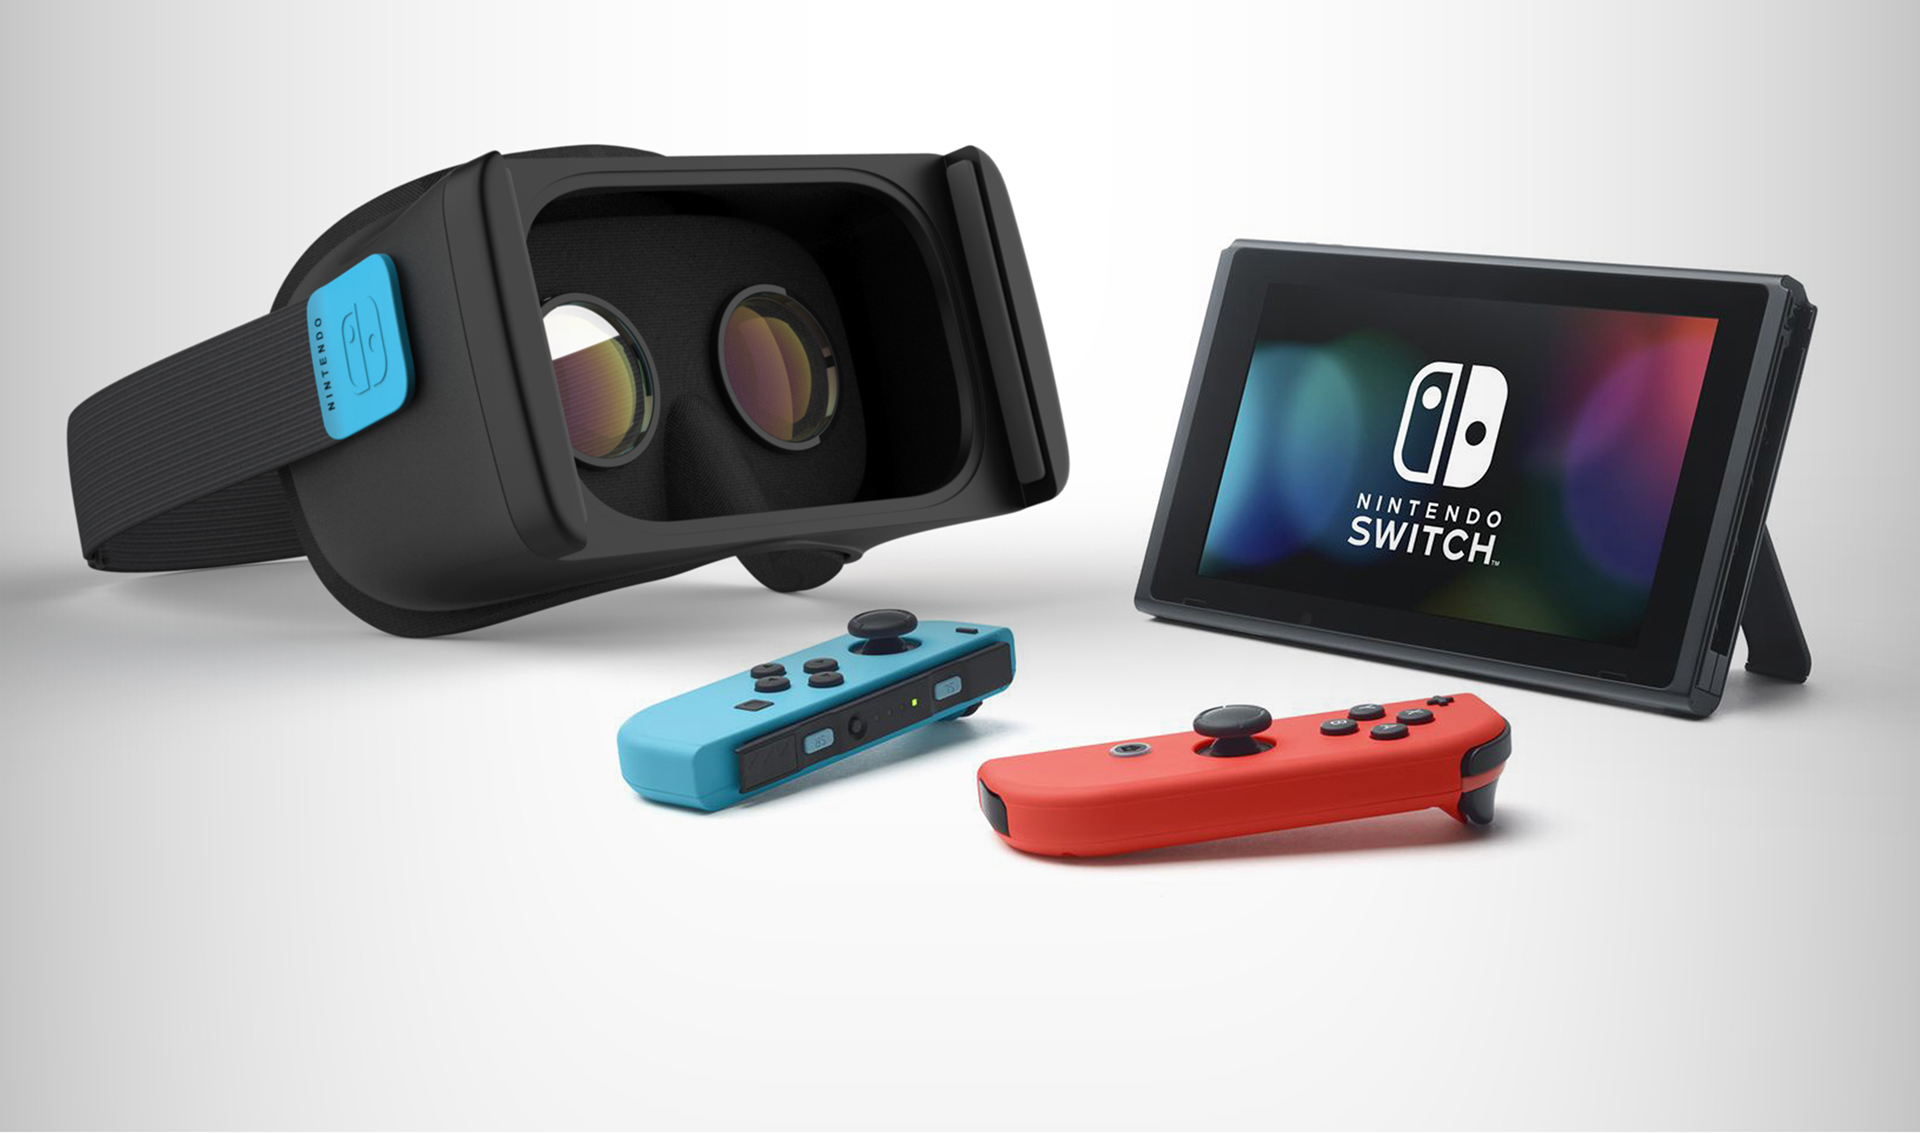 Nintendo Switch Code Switch Vr on headphone parts